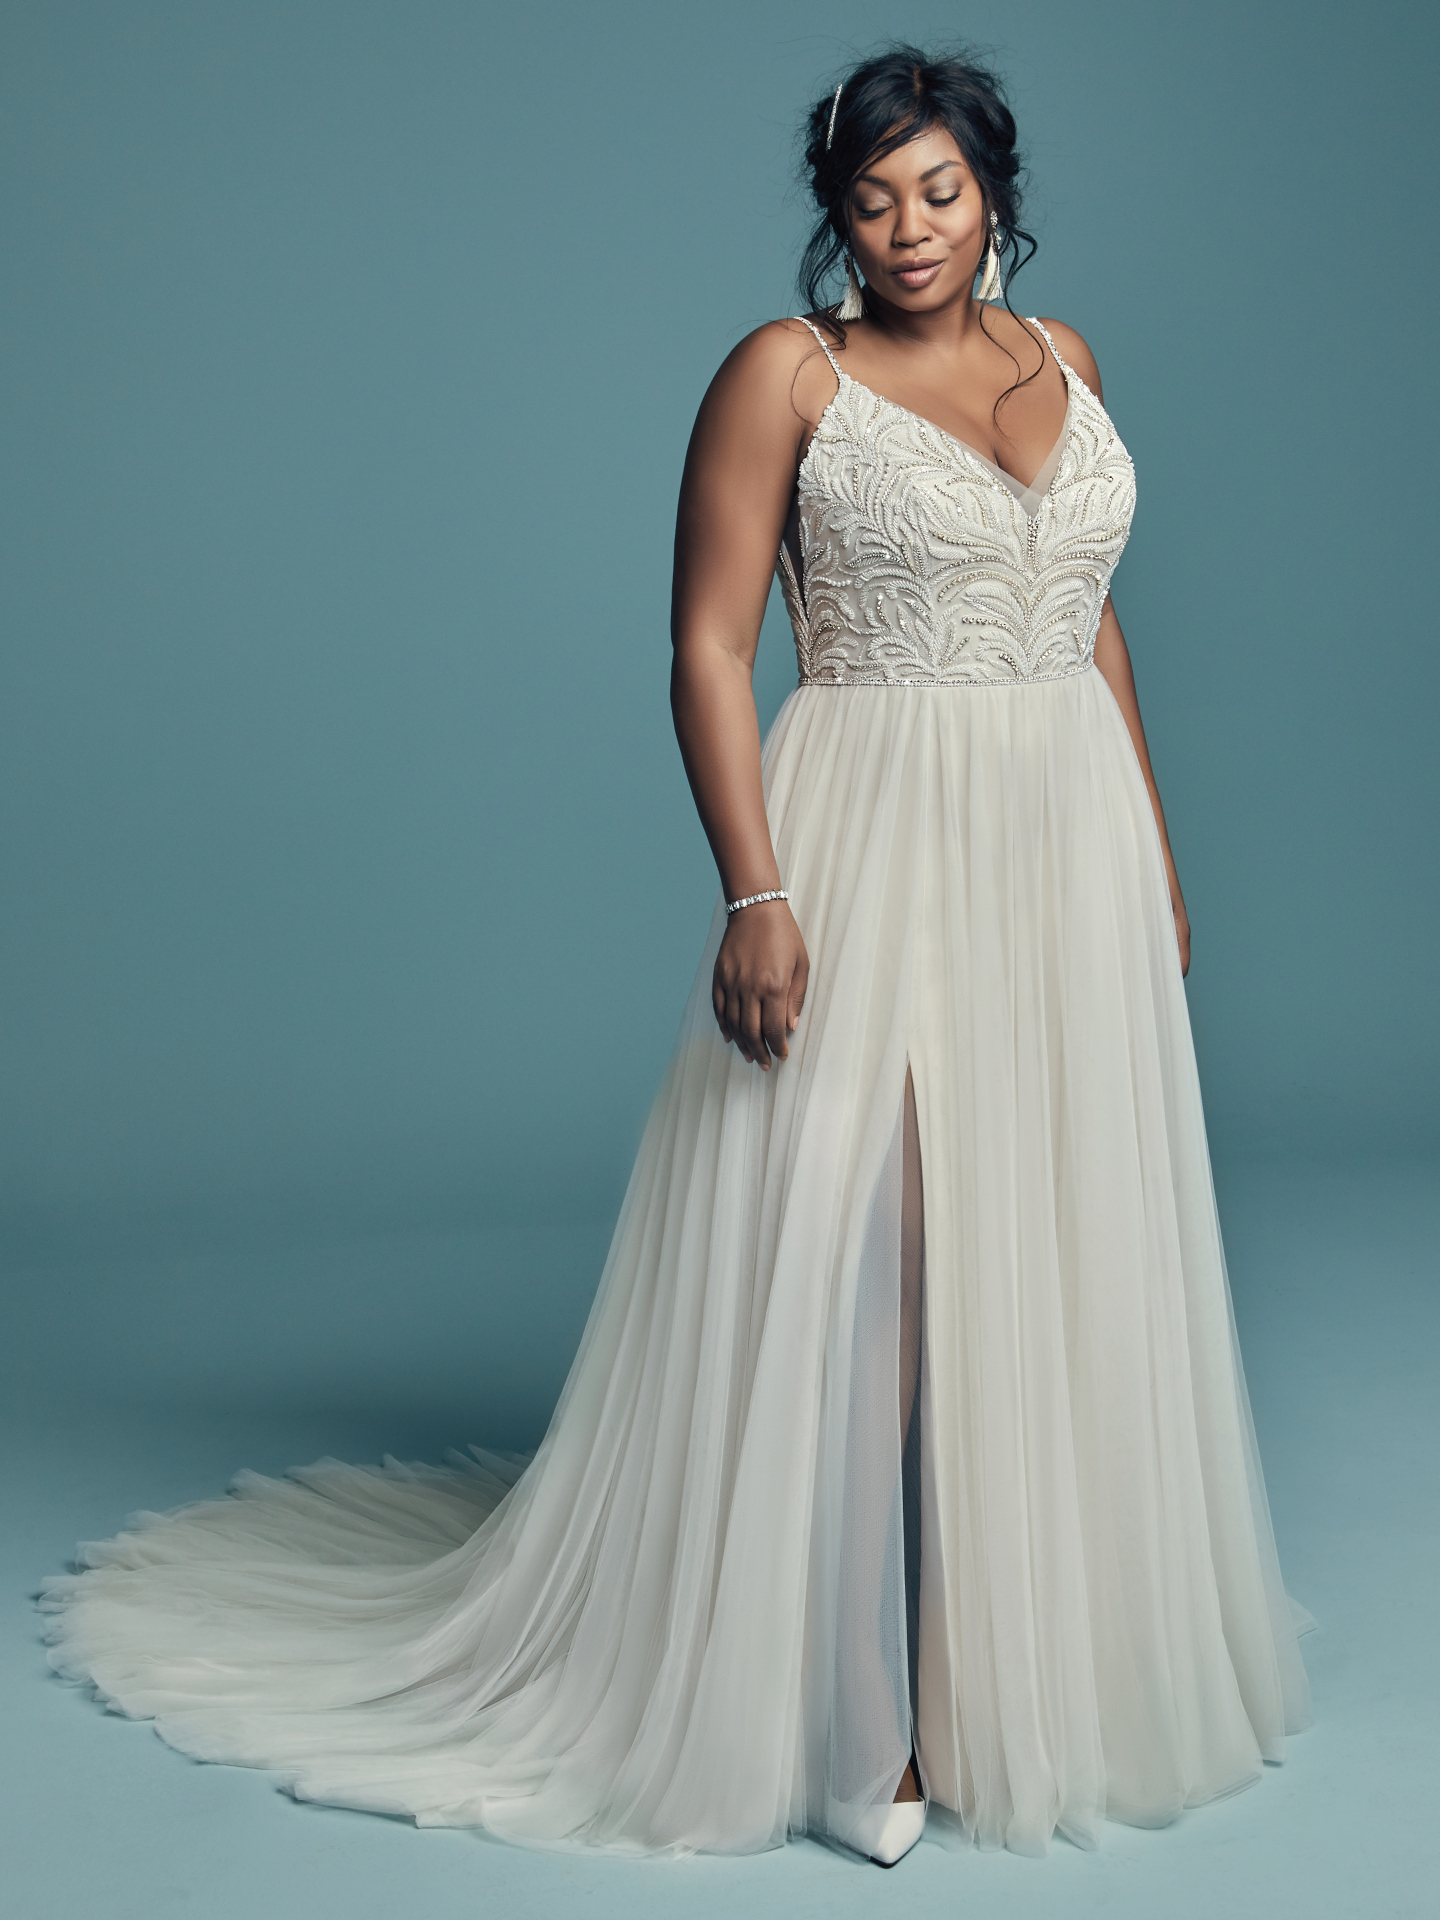 Flattering Wedding Dresses for Curvy Brides - Winstyn by Maggie Sottero